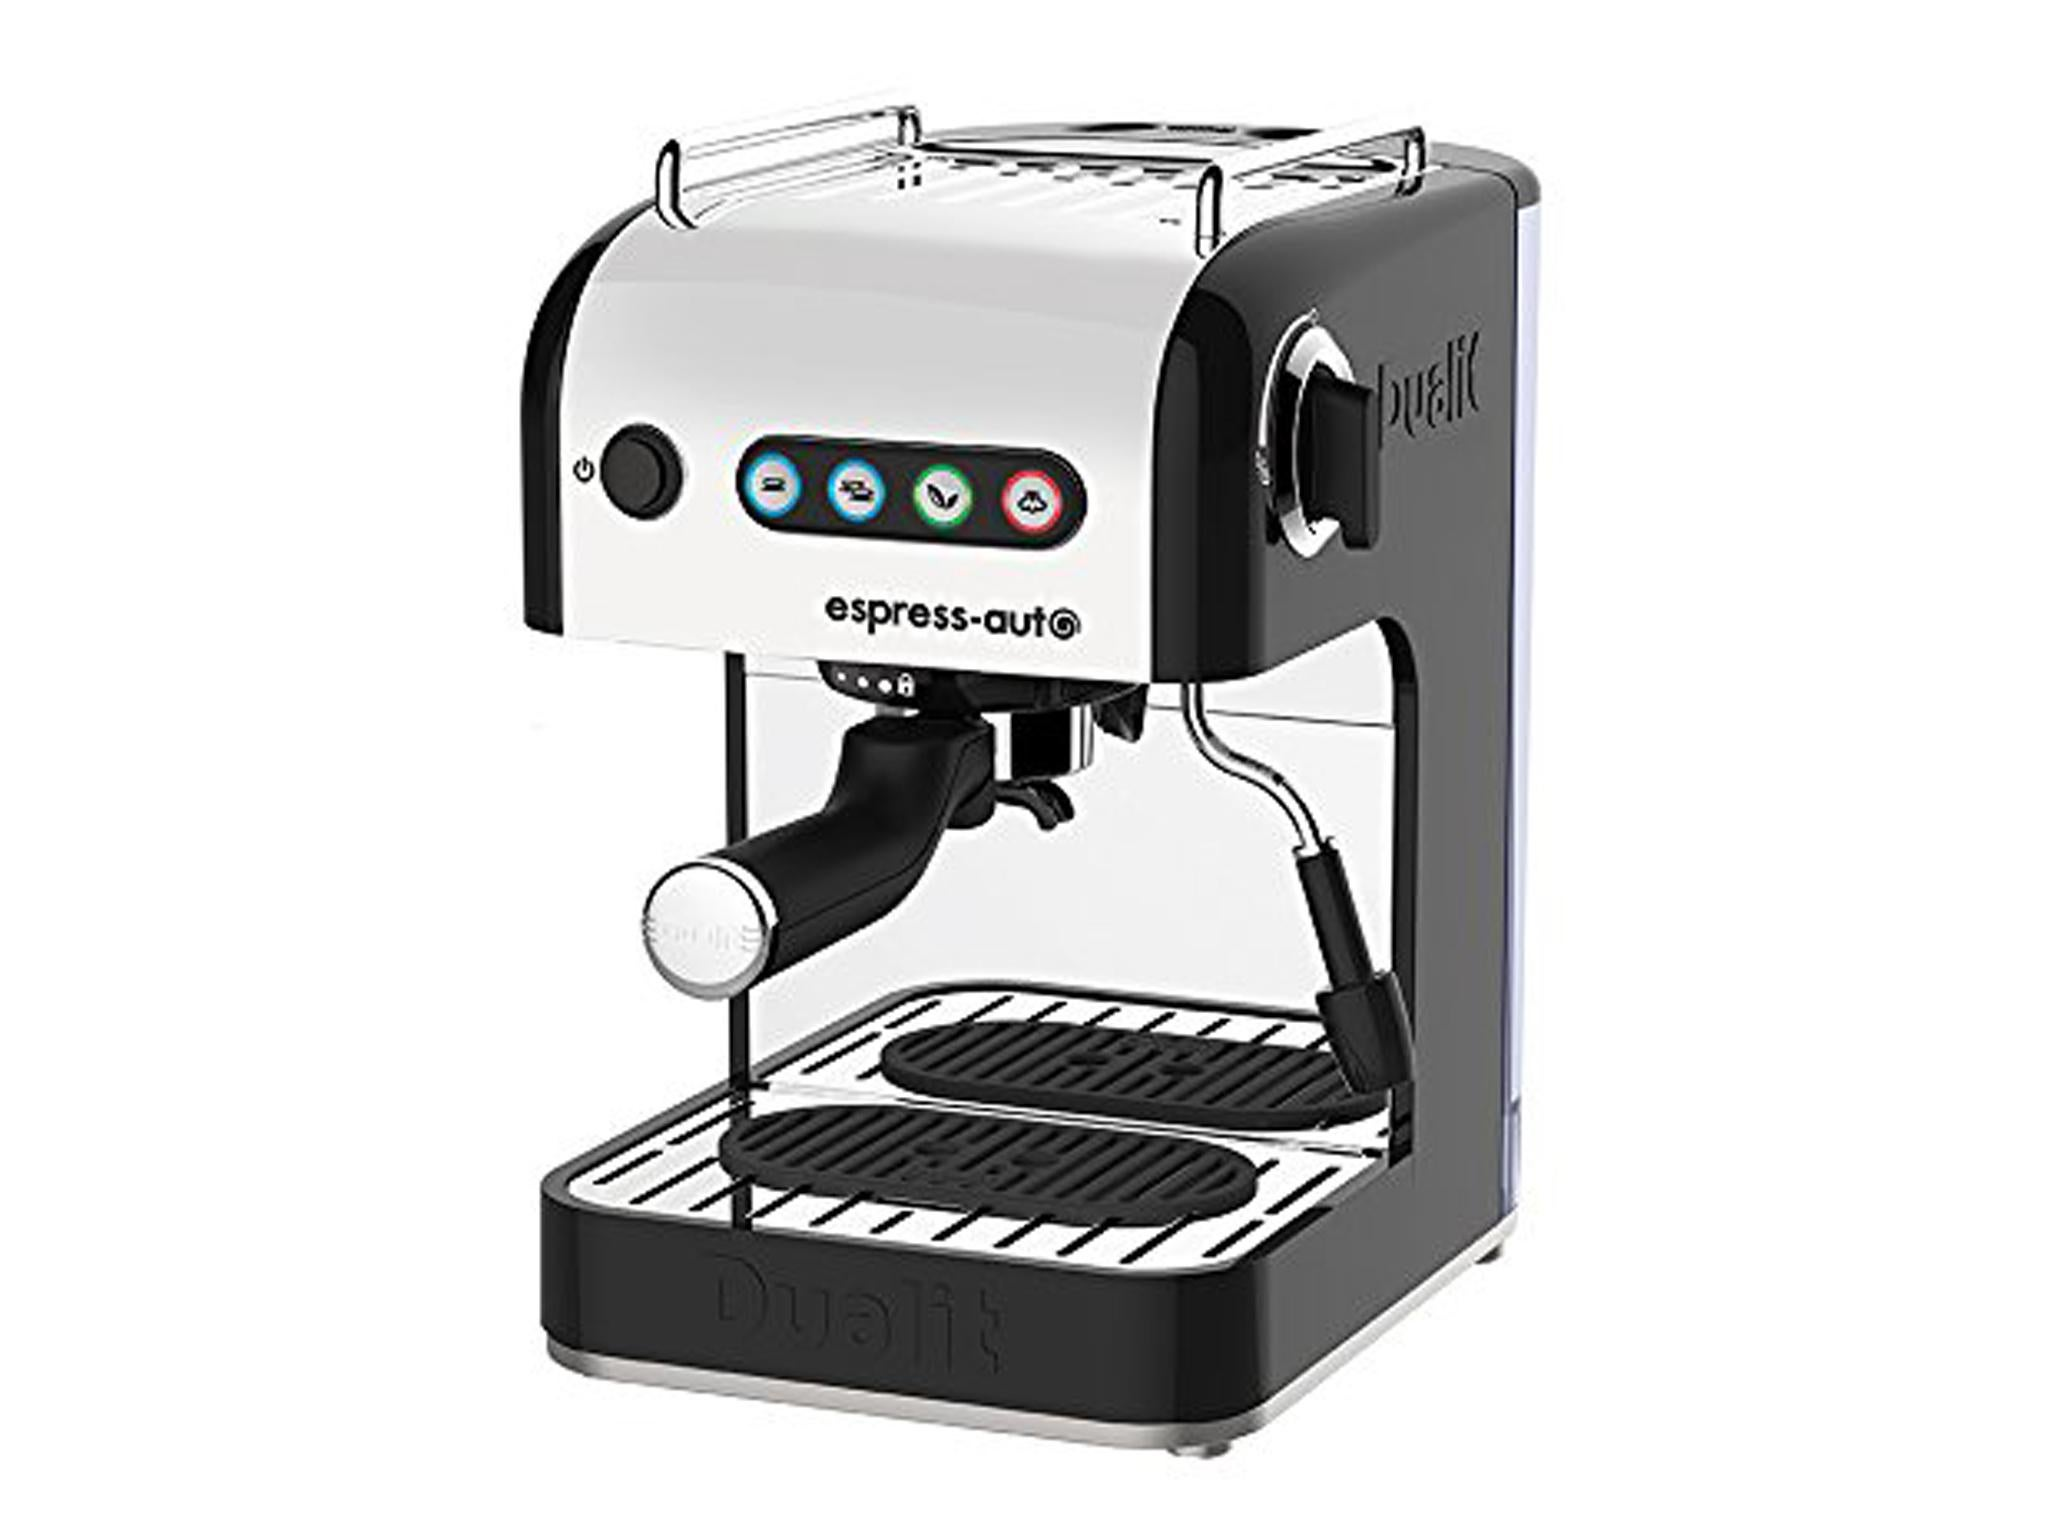 10 Best Bean To Cup Coffee Machines The Independent In 1 Dualit Espress Auto 4 And Tea Machine 18499 Amazon